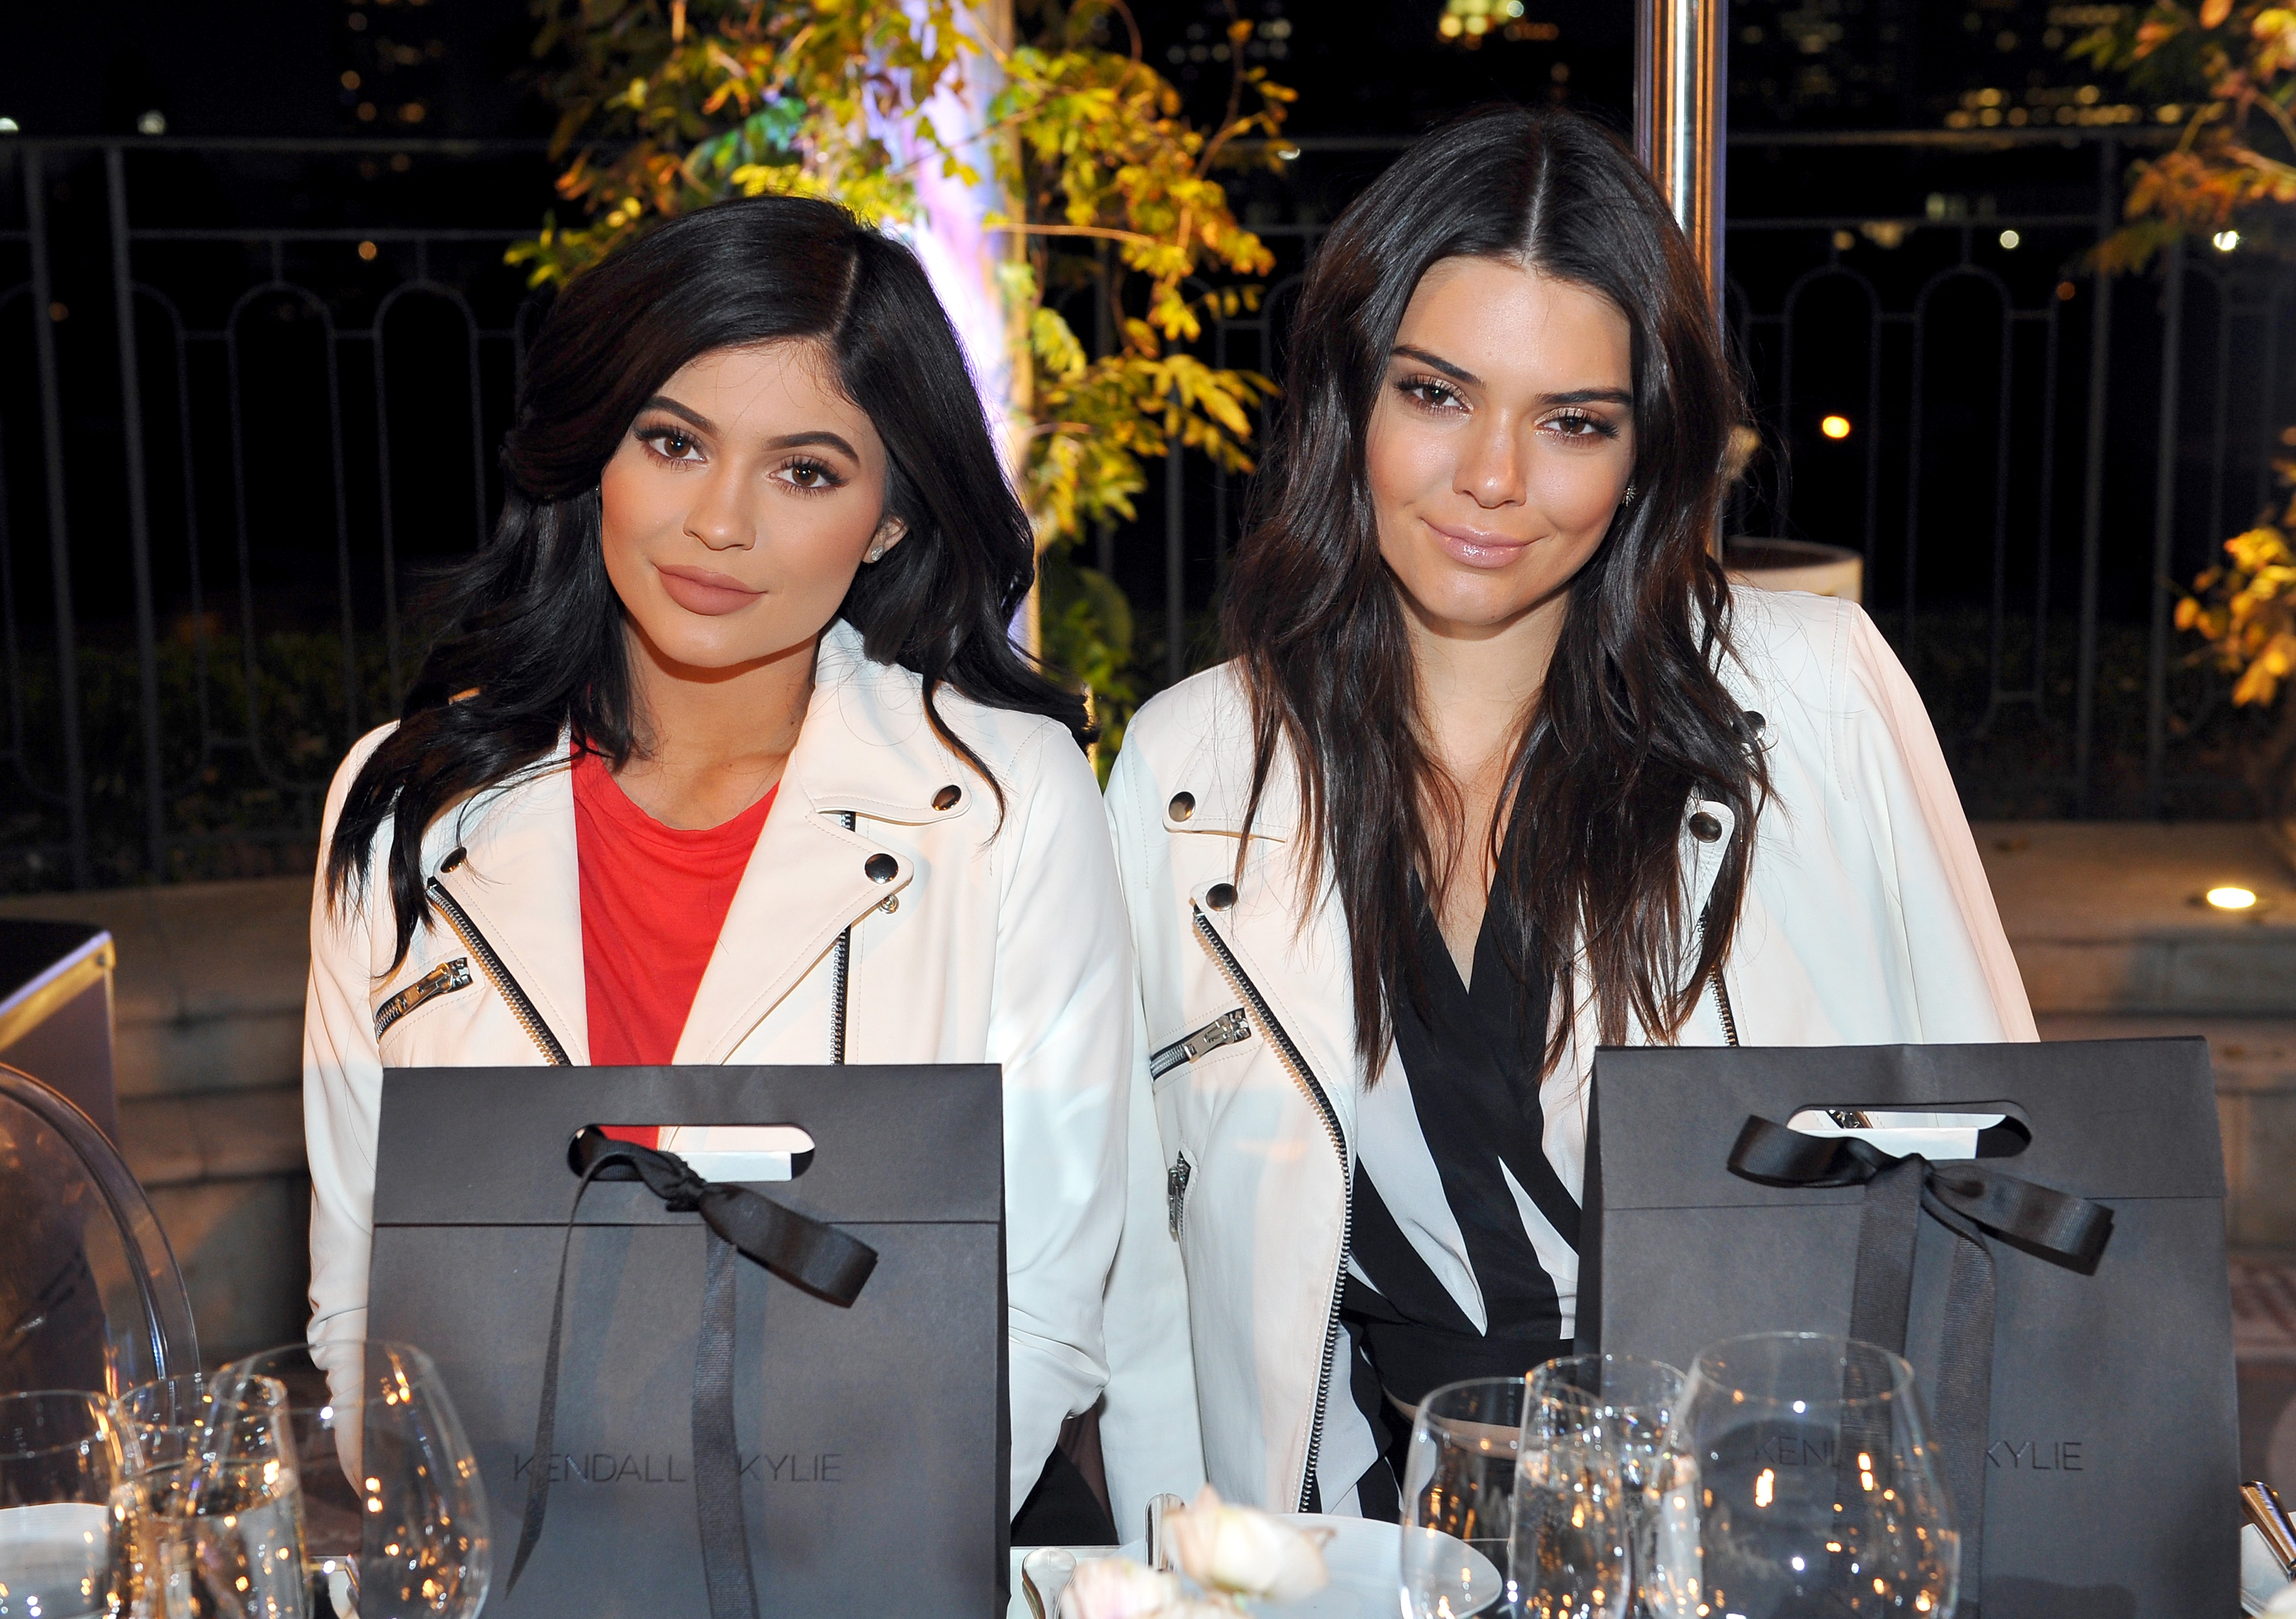 BEVERLY HILLS, CALIFORNIA - MARCH 31:  Kylie Jenner (L) and Kendall Jenner attend as Neiman Marcus celebrates the exclusive #OnlyatNM KENDALL + KYLIE Collection at Neiman Marcus on March 31, 2016 in Beverly Hills, California.  (Photo by Donato Sardella/Getty Images for Neiman Marcus)